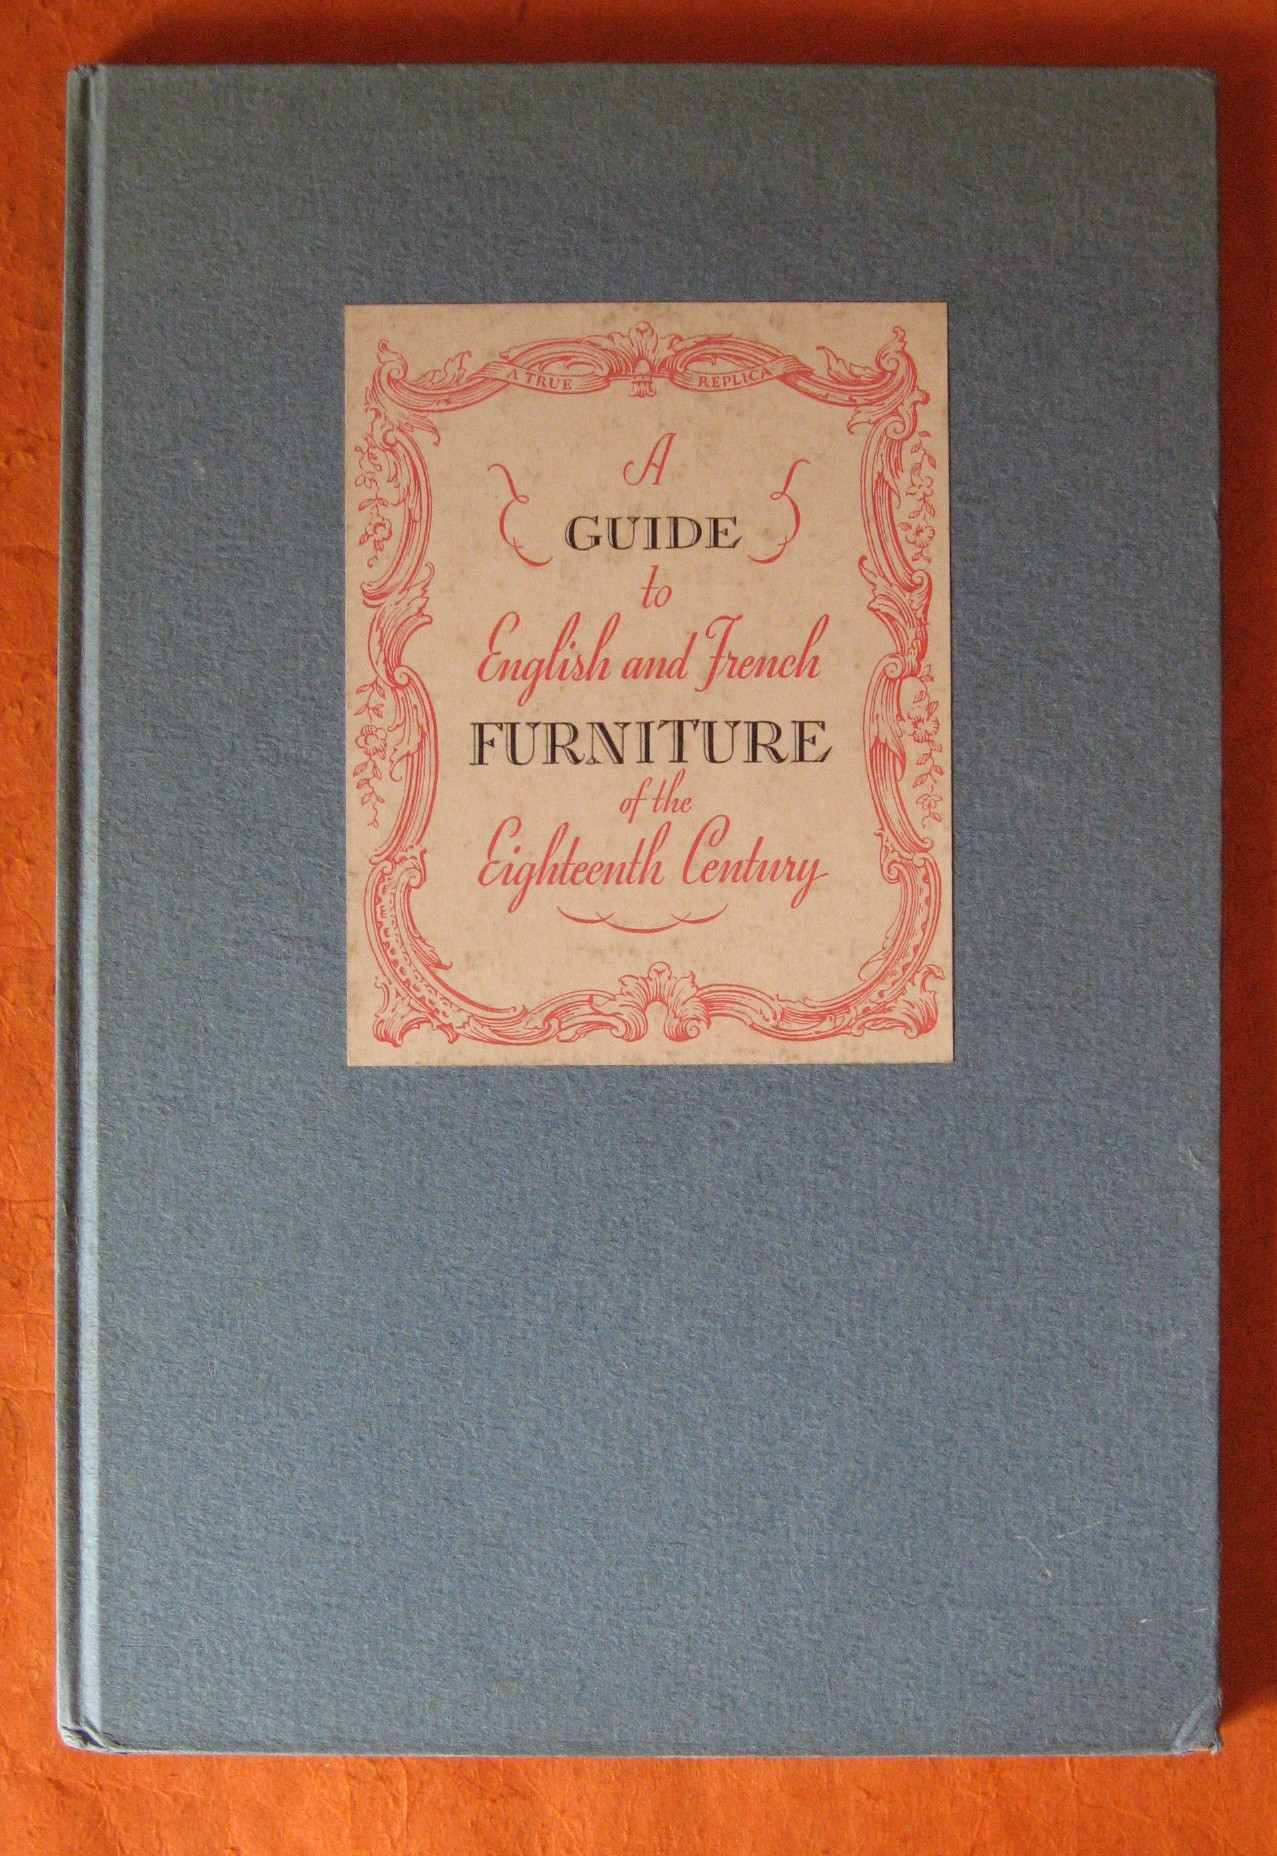 Fast Deliver Rare 1940 Guide To English French Furniture Of The 18th Century Baker Furniture Furniture